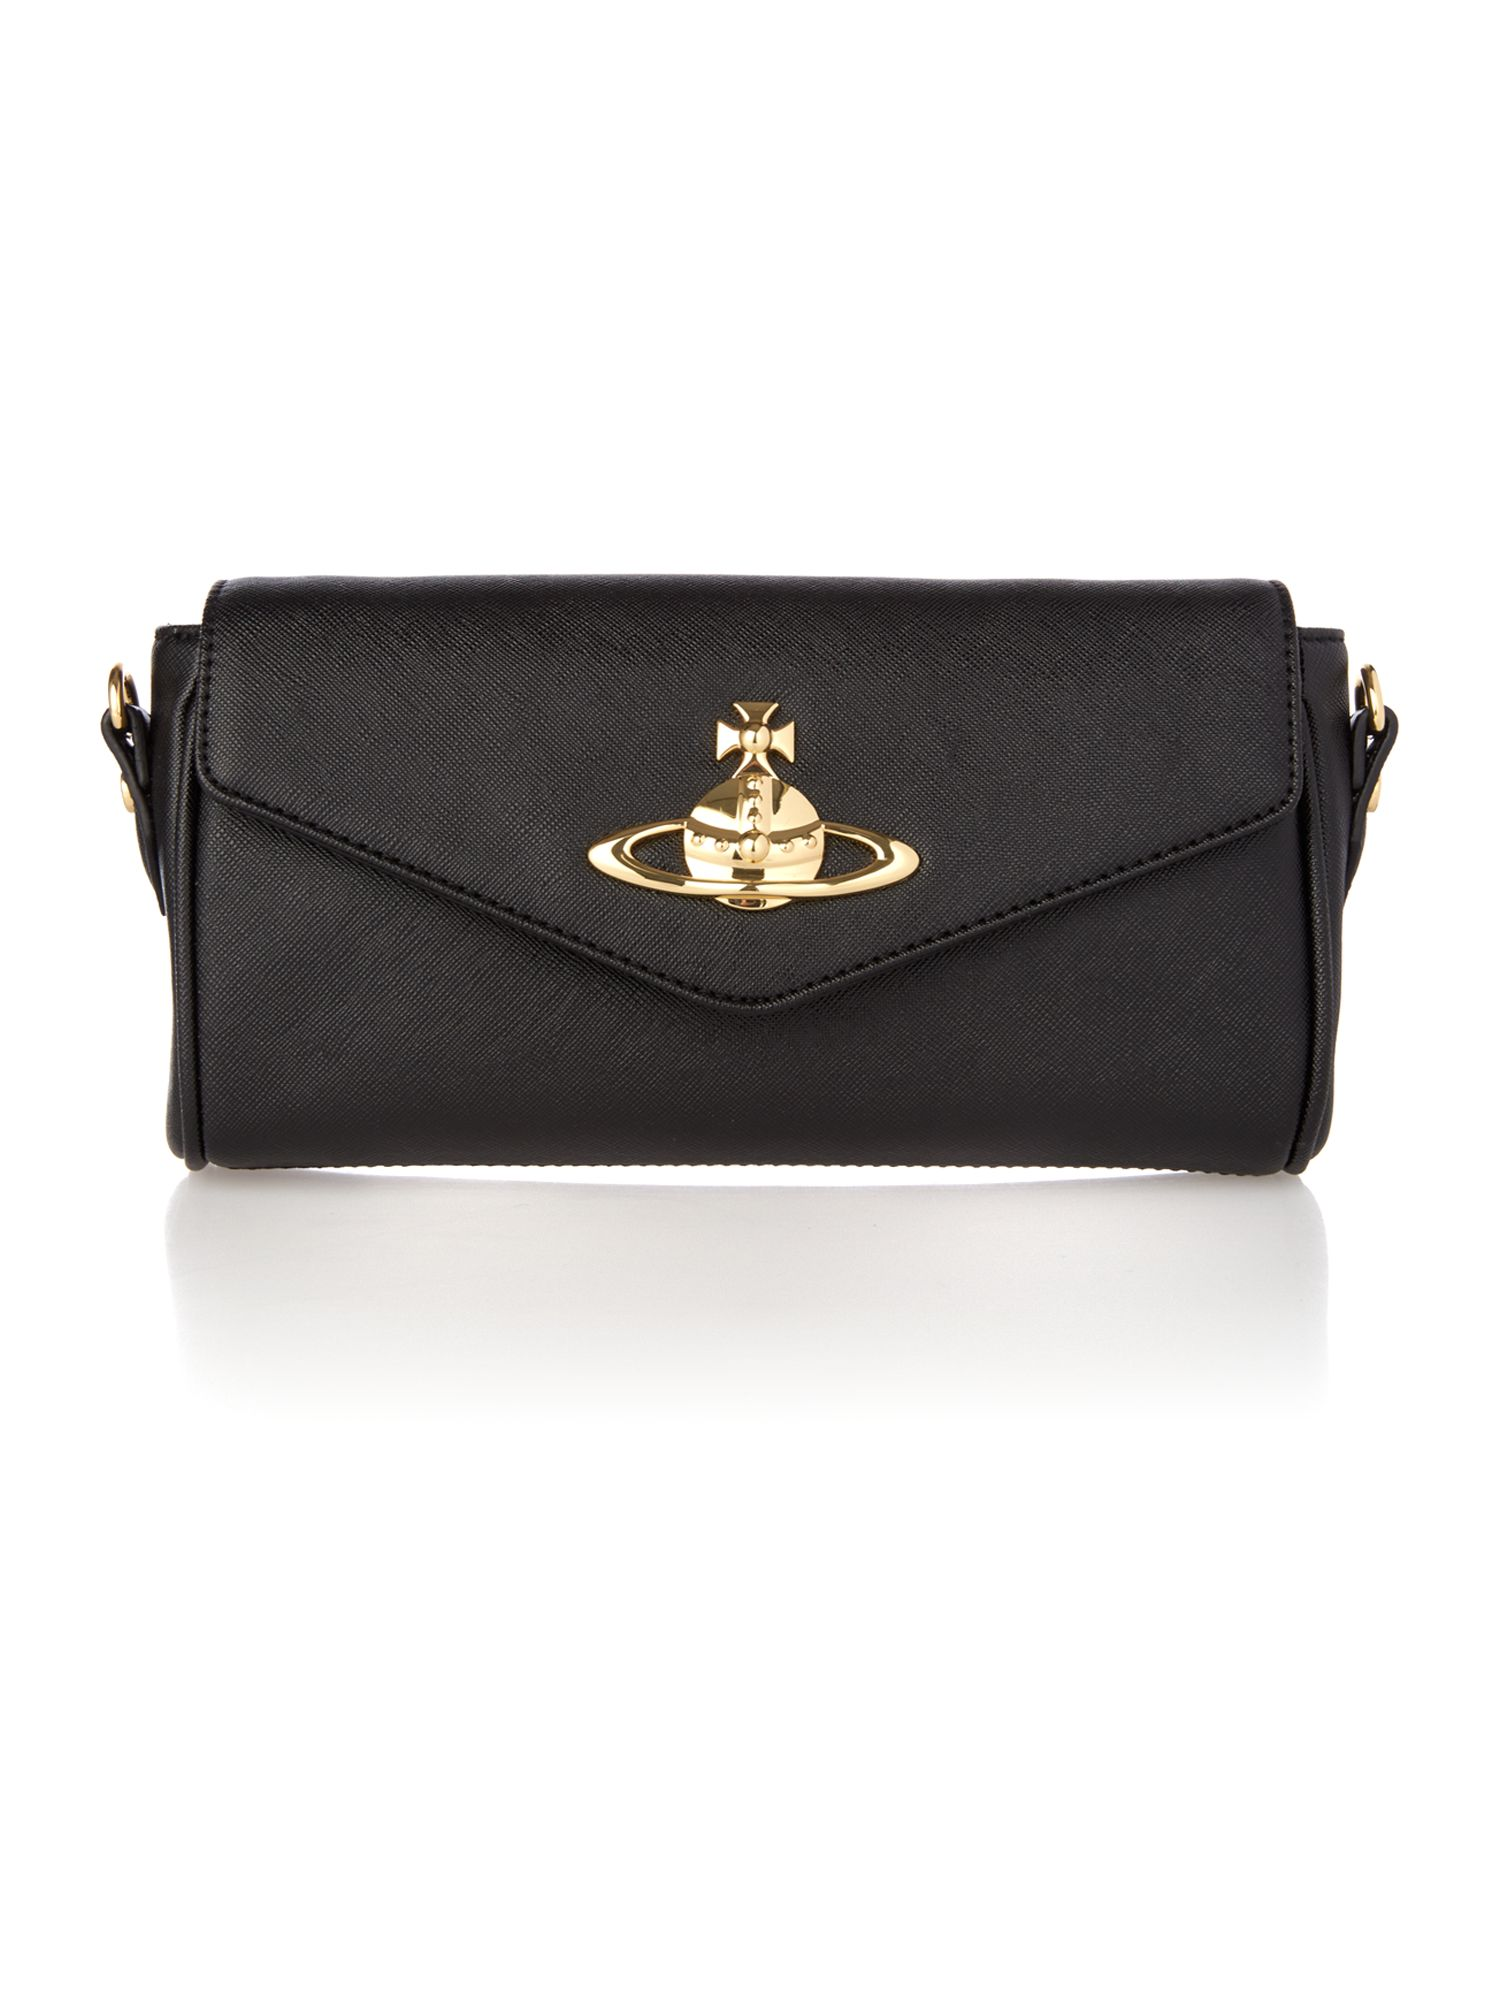 Divina small black flapover cross body bag